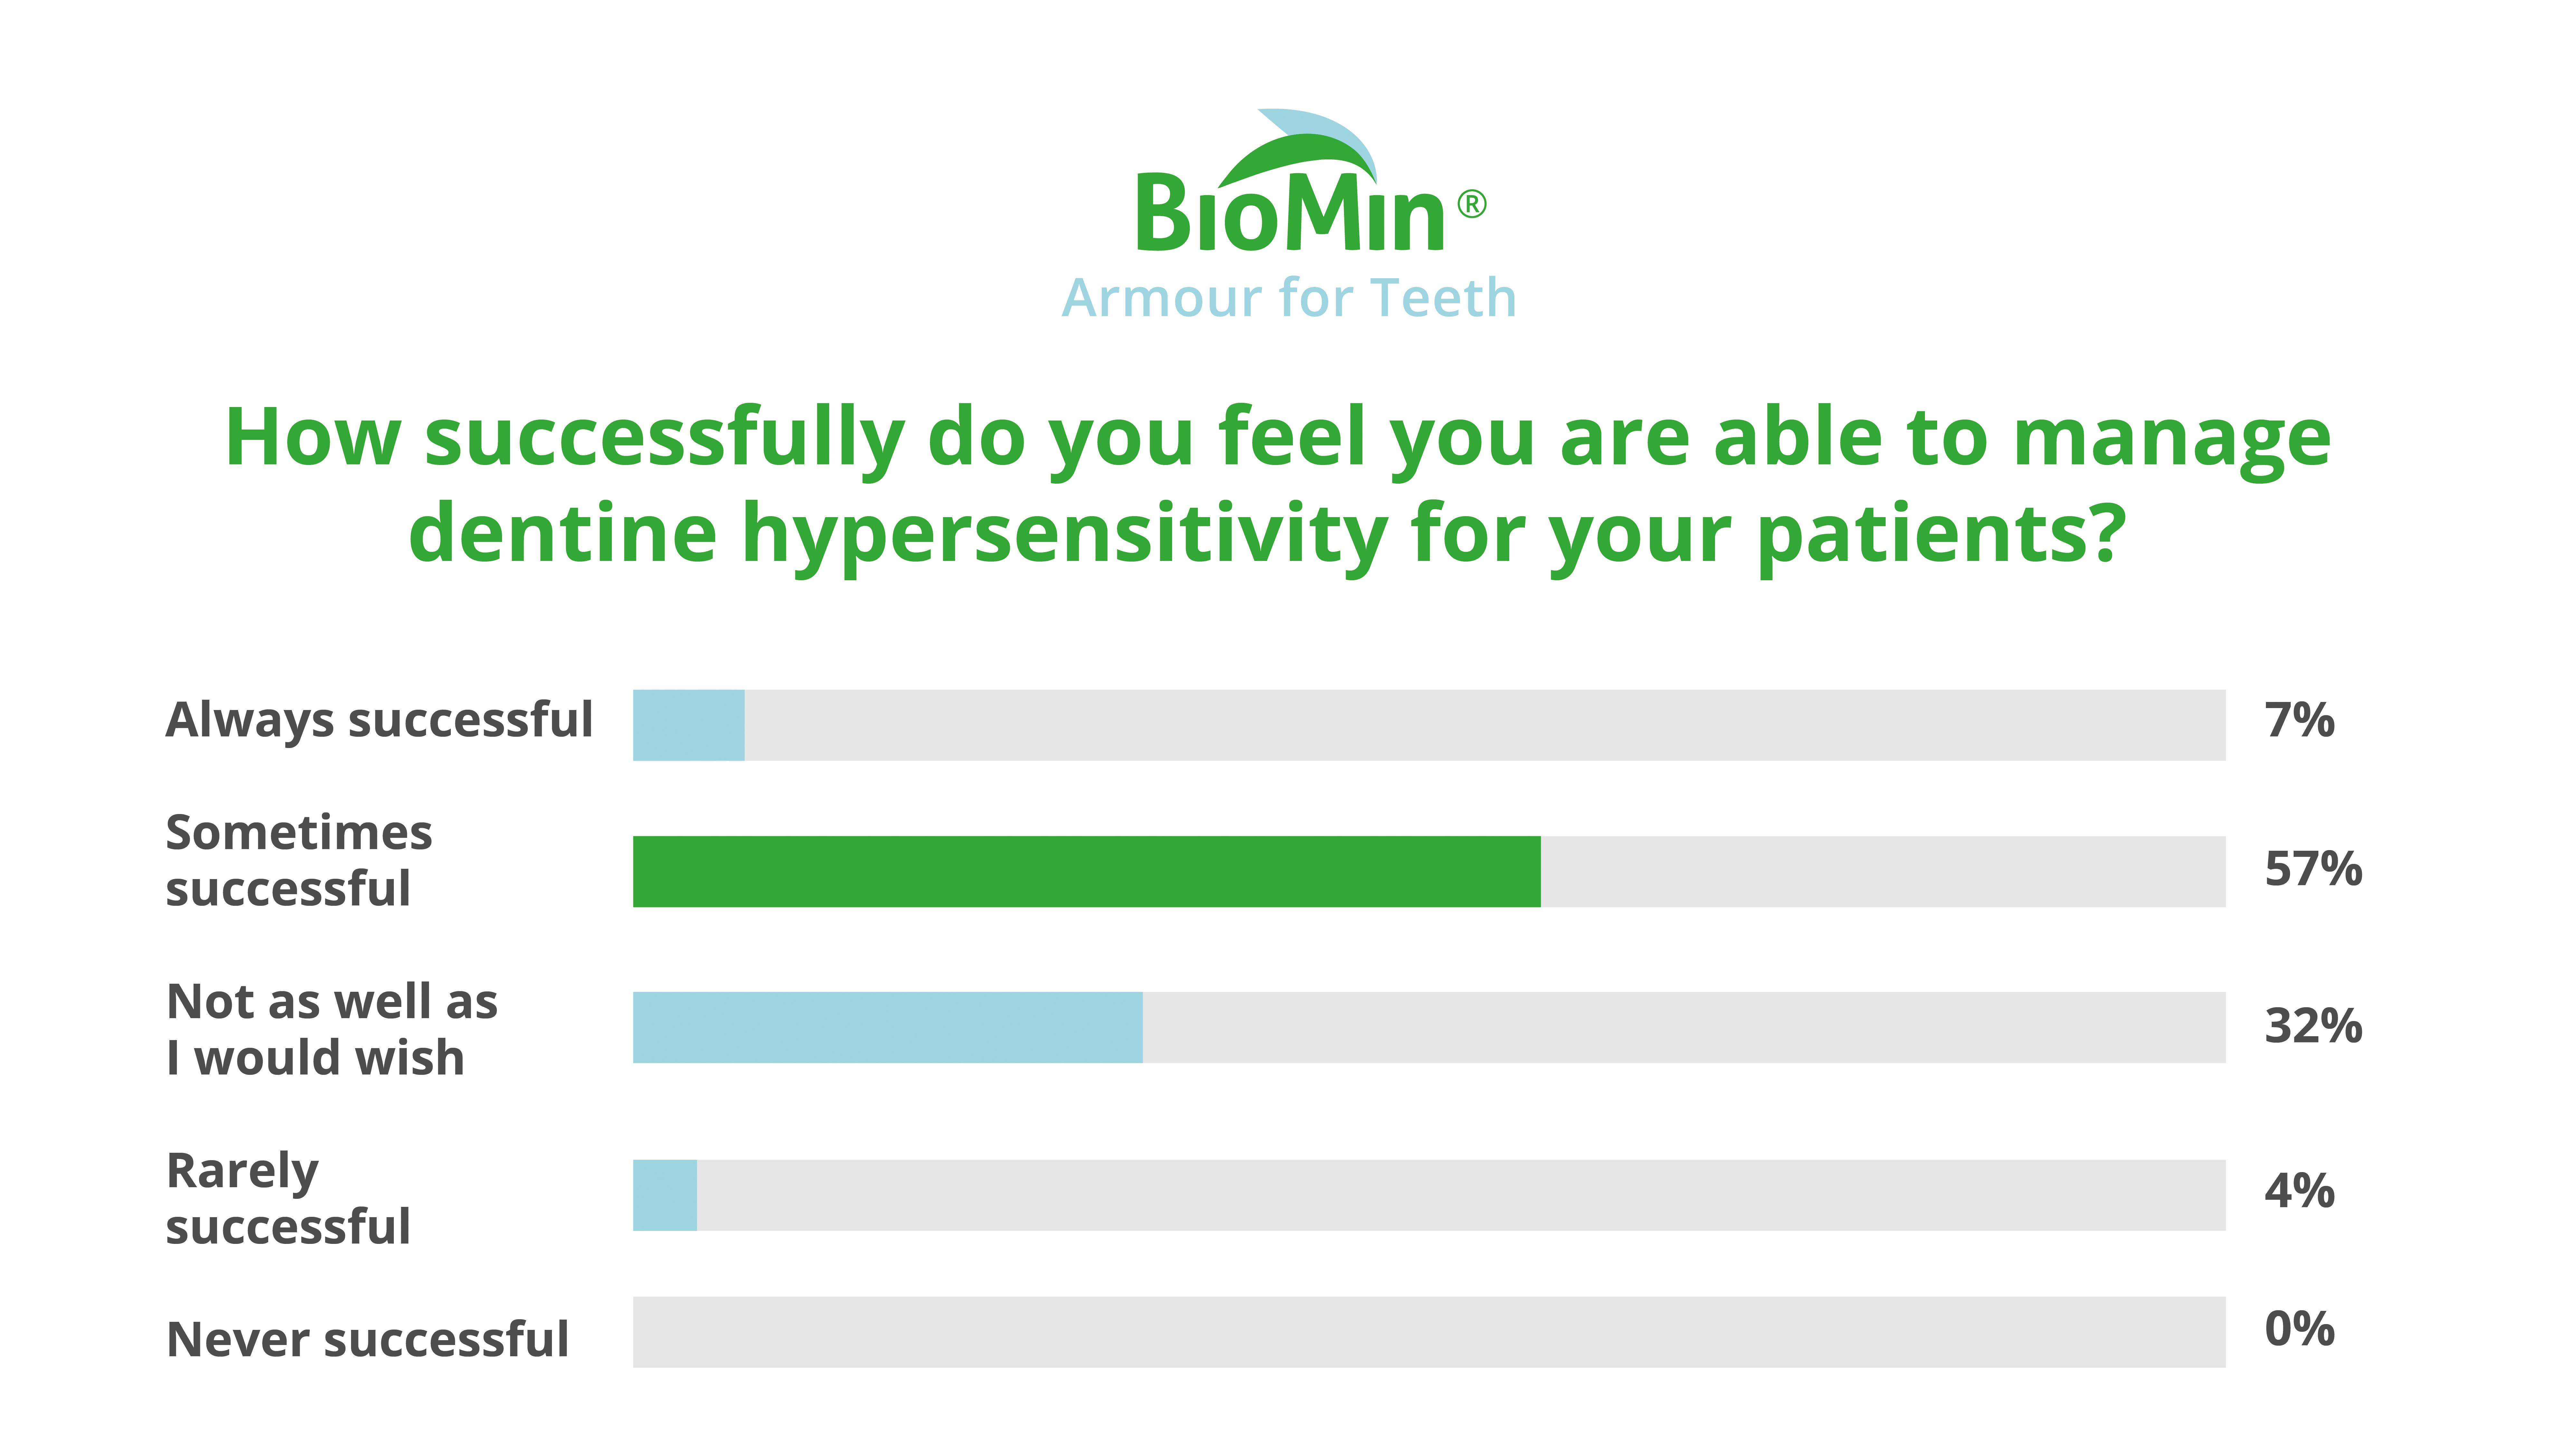 How successfully do you feel you are able to manage dentine hypersensitivity for your patients?